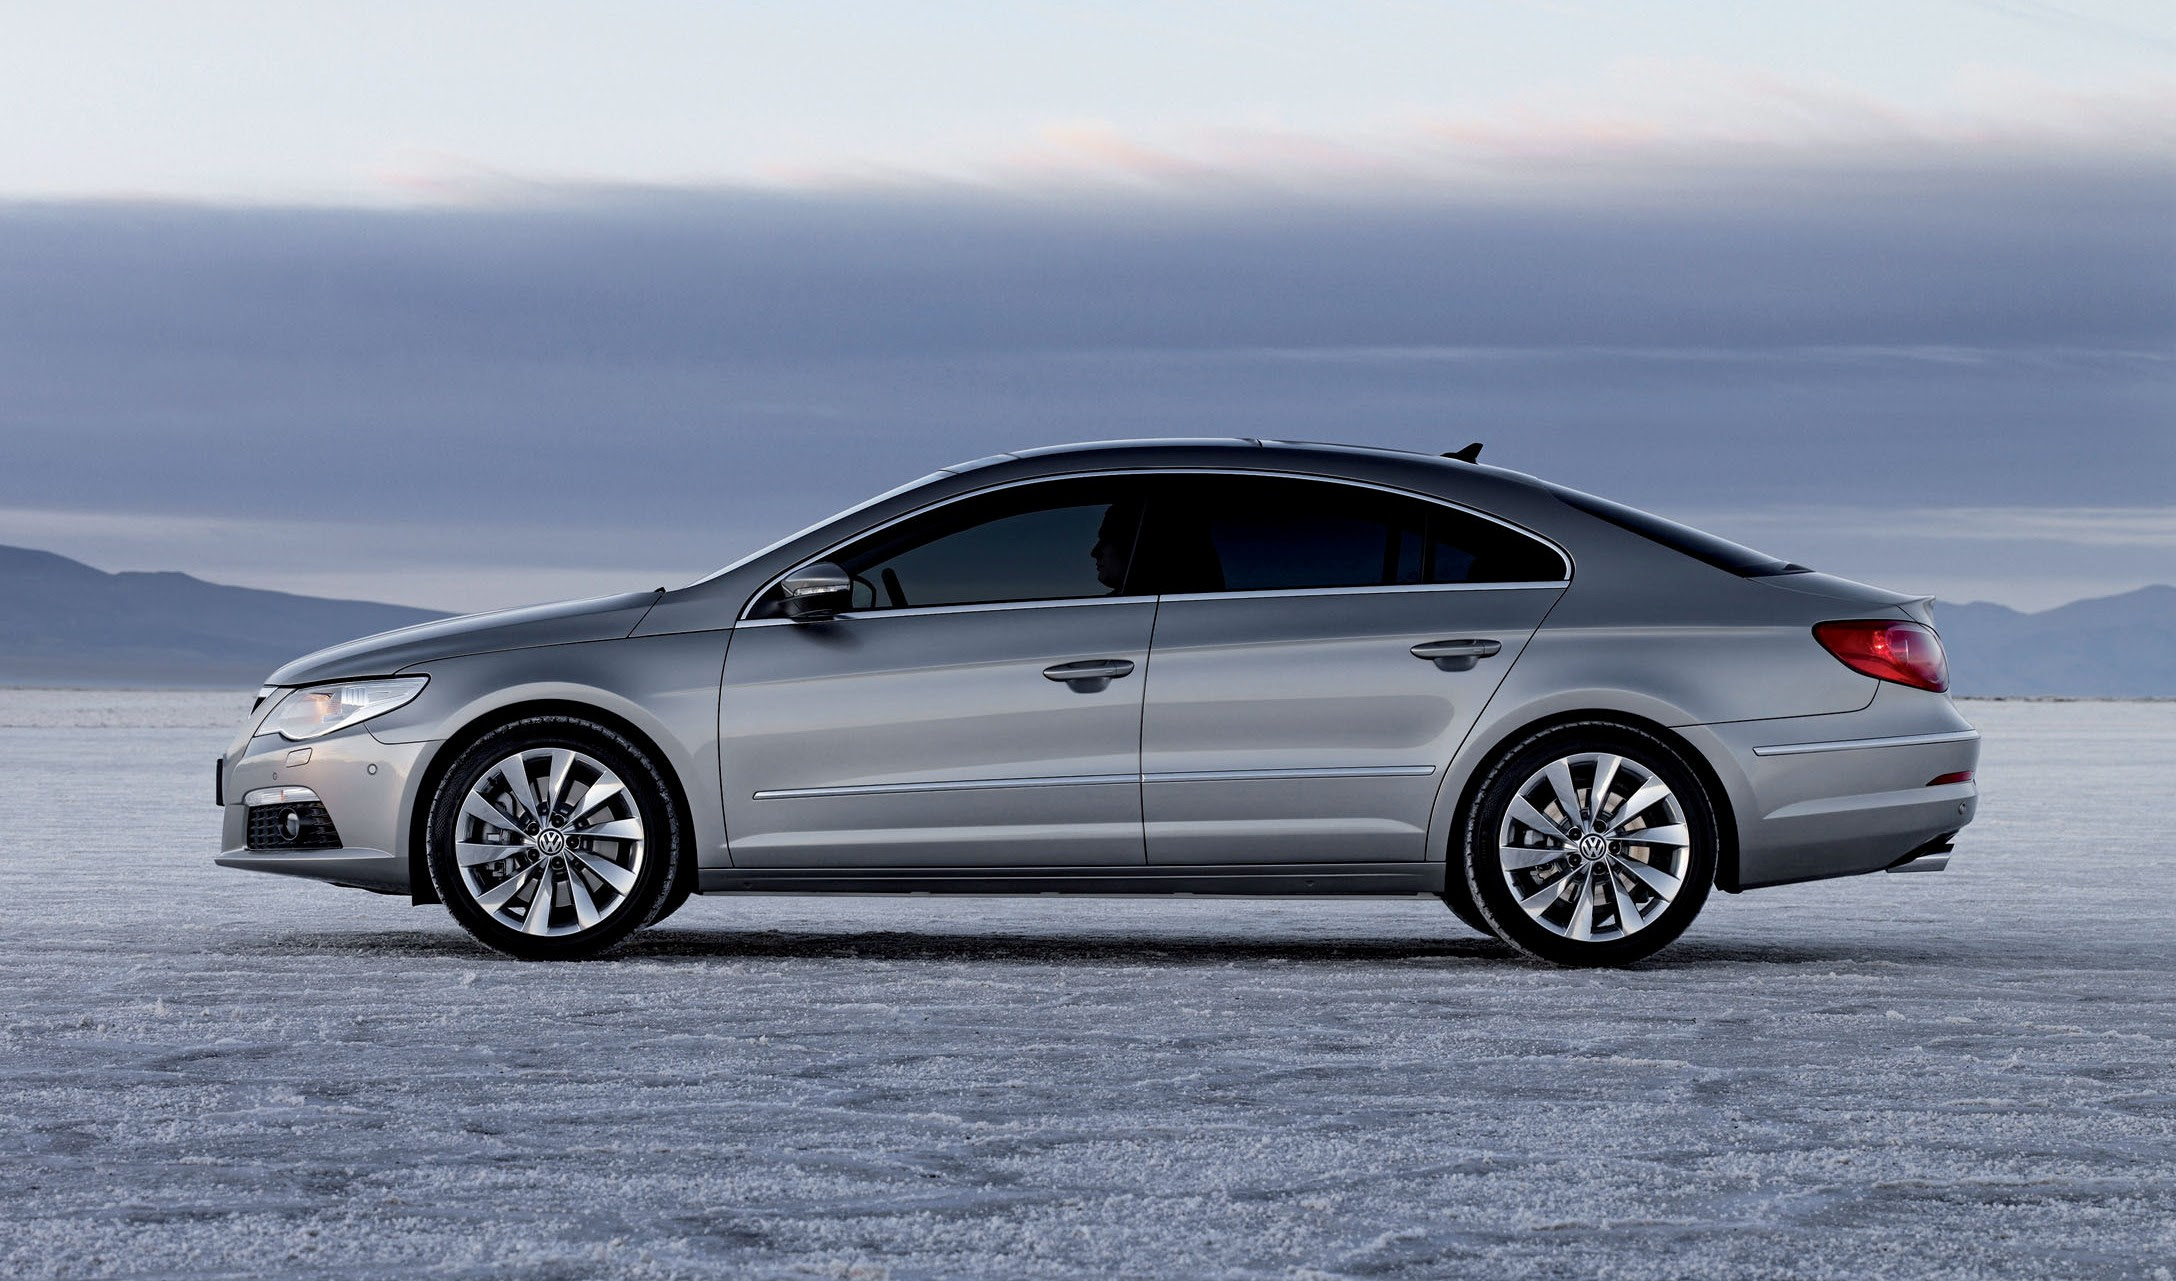 Volkswagen CC Wallpapers High Quality  Download Free